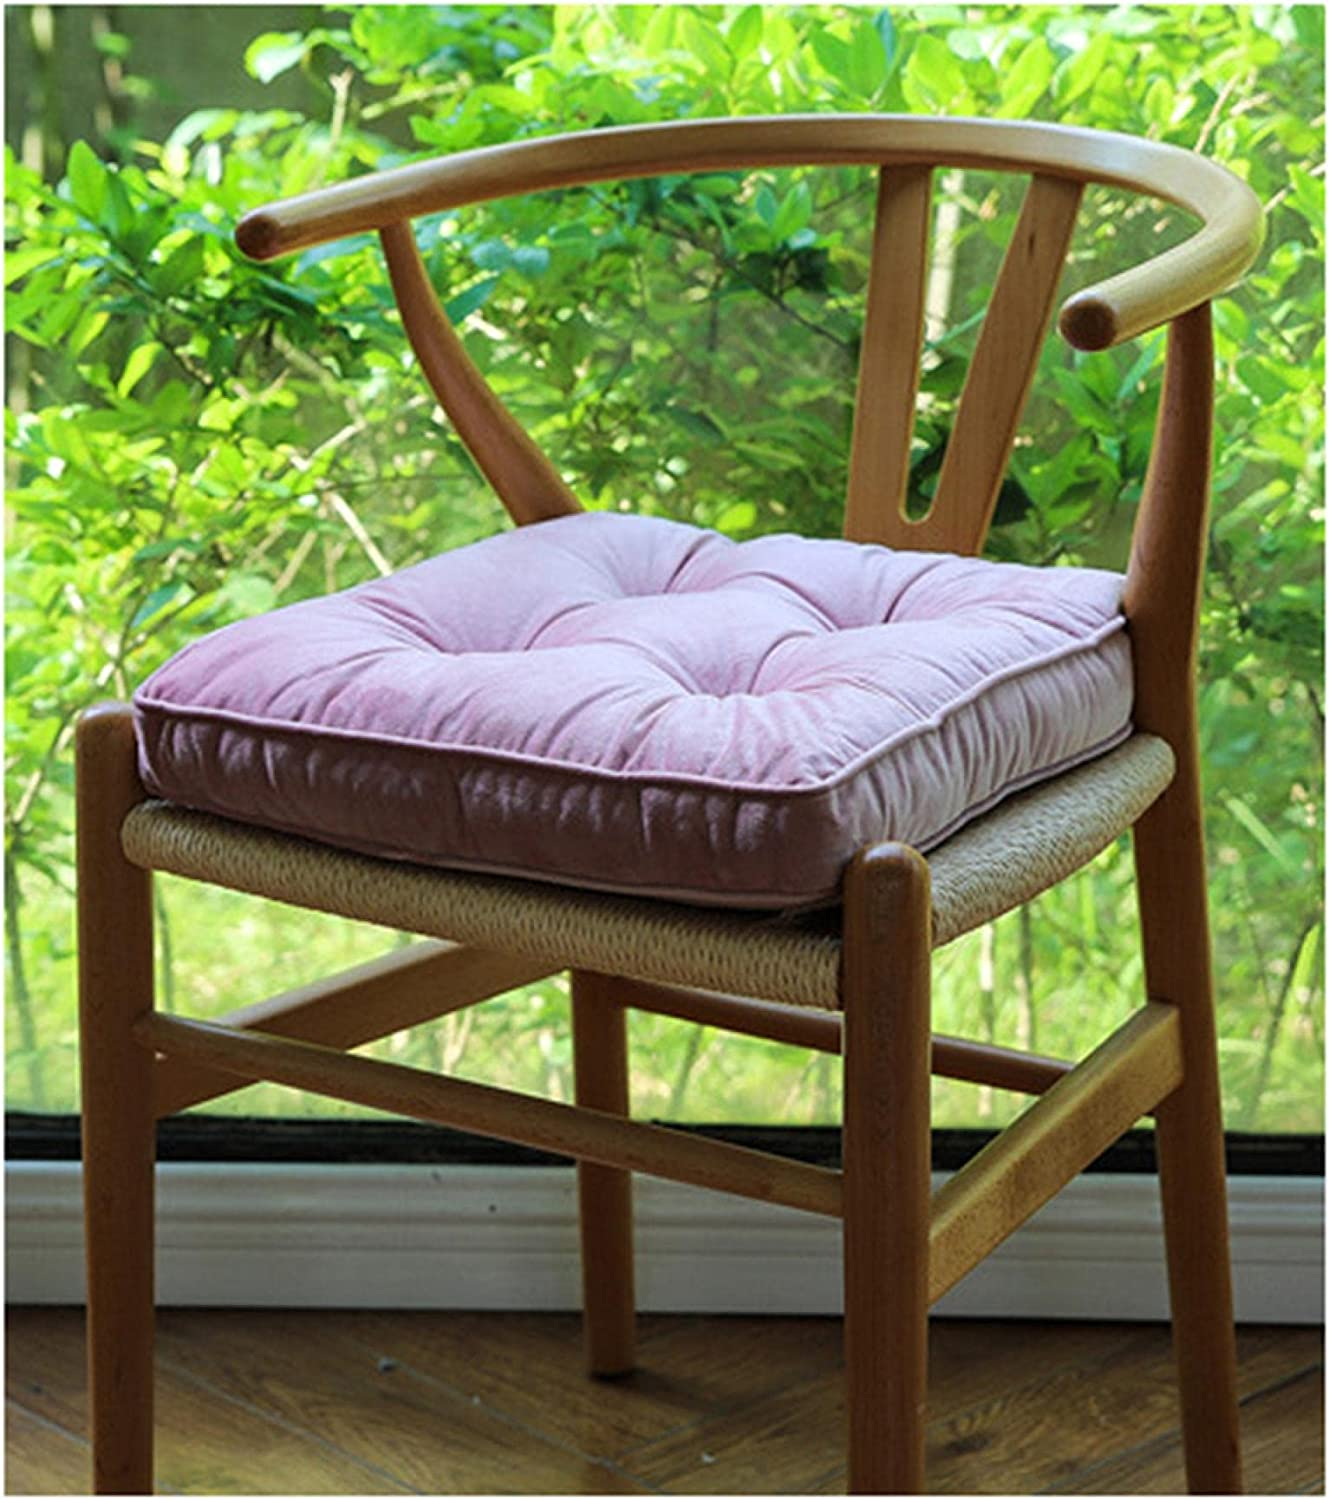 DFGD Outdoor Max 52% OFF Corduroy Chair Pad with Ties Dini Indoor New color Home Decor